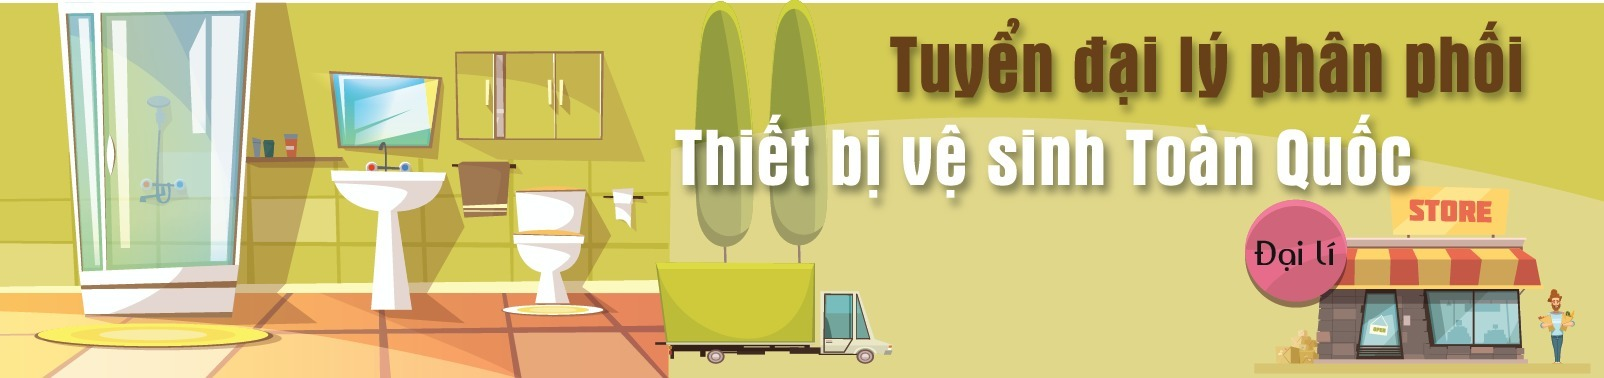 thietbihungthu (@thietbihungthu) Cover Image